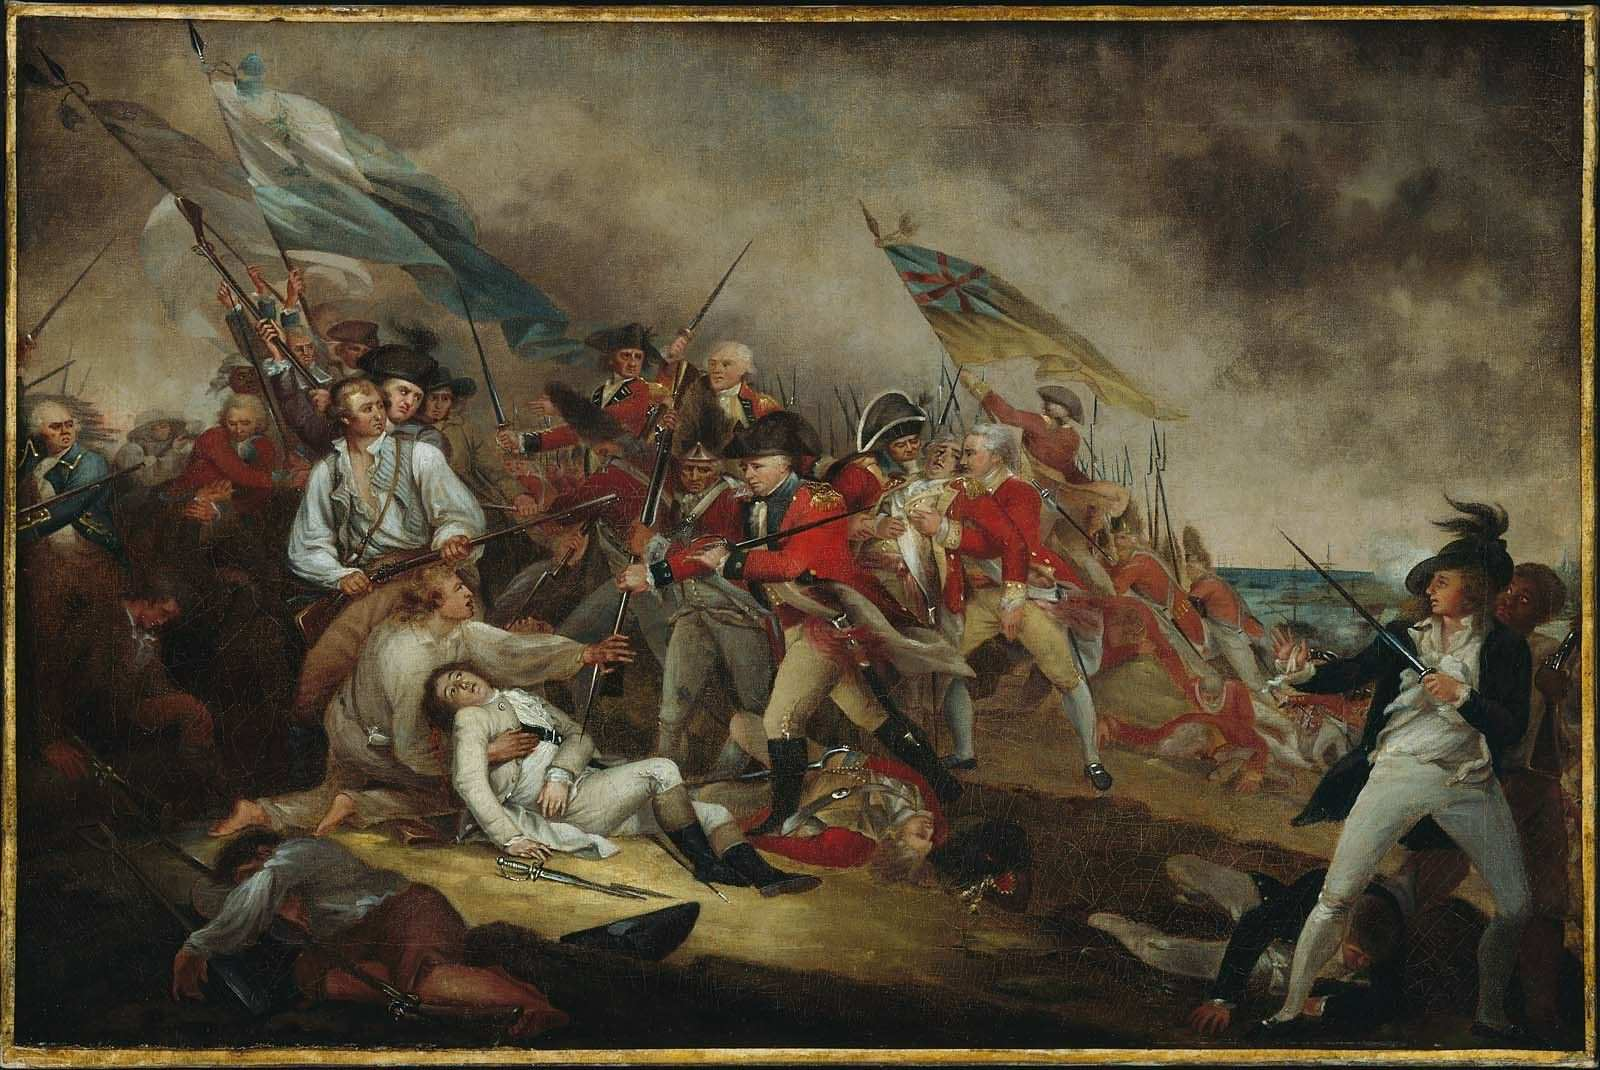 The Death of General Warren at the Battle of Bunker Hill by John Trumbull